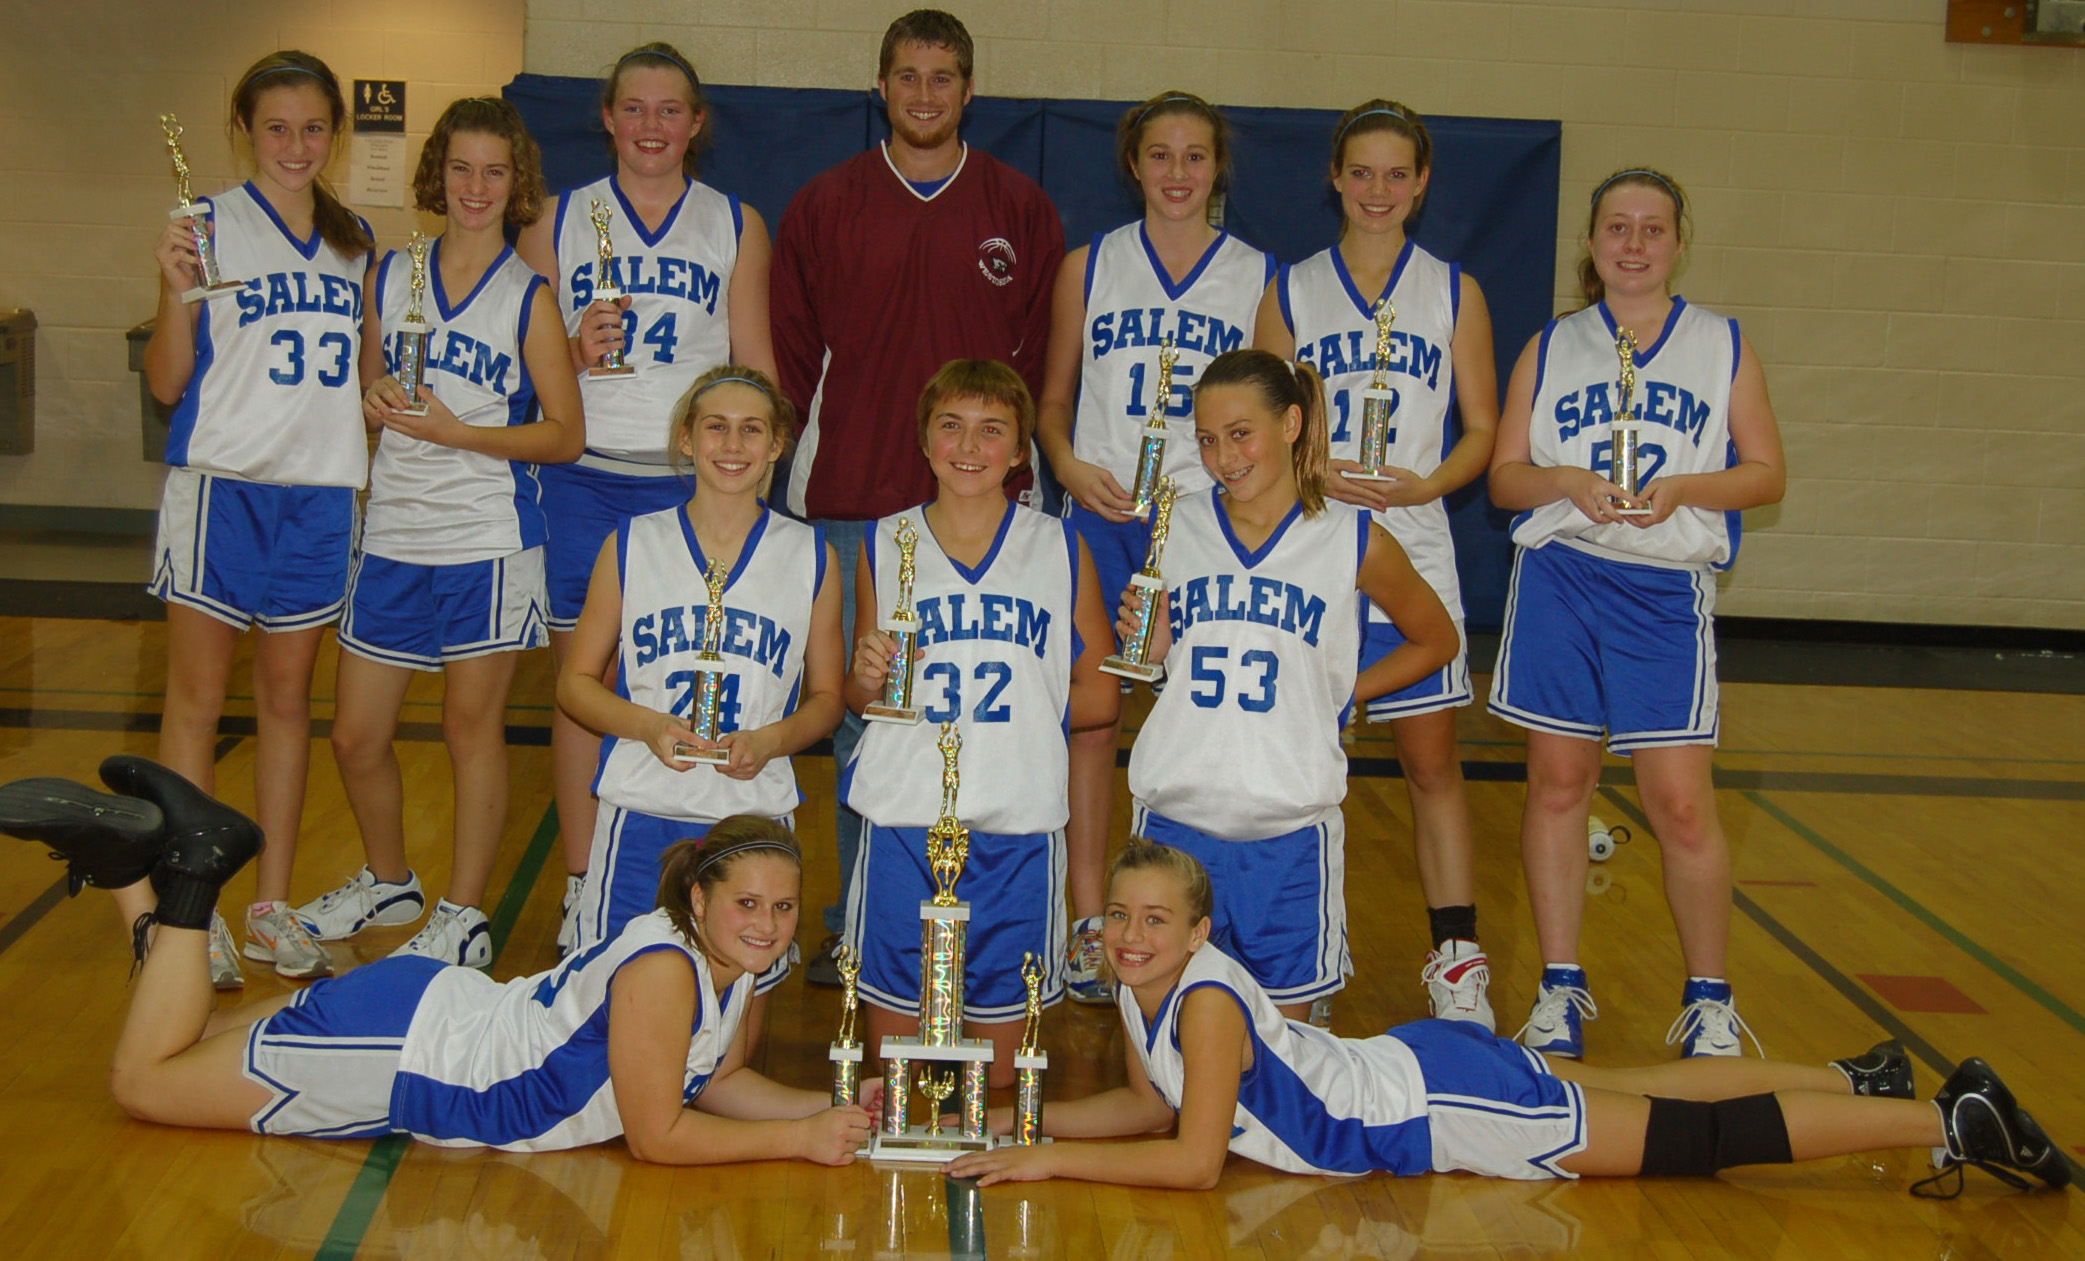 Salem girls take Comet invitational hoops tournament title West of